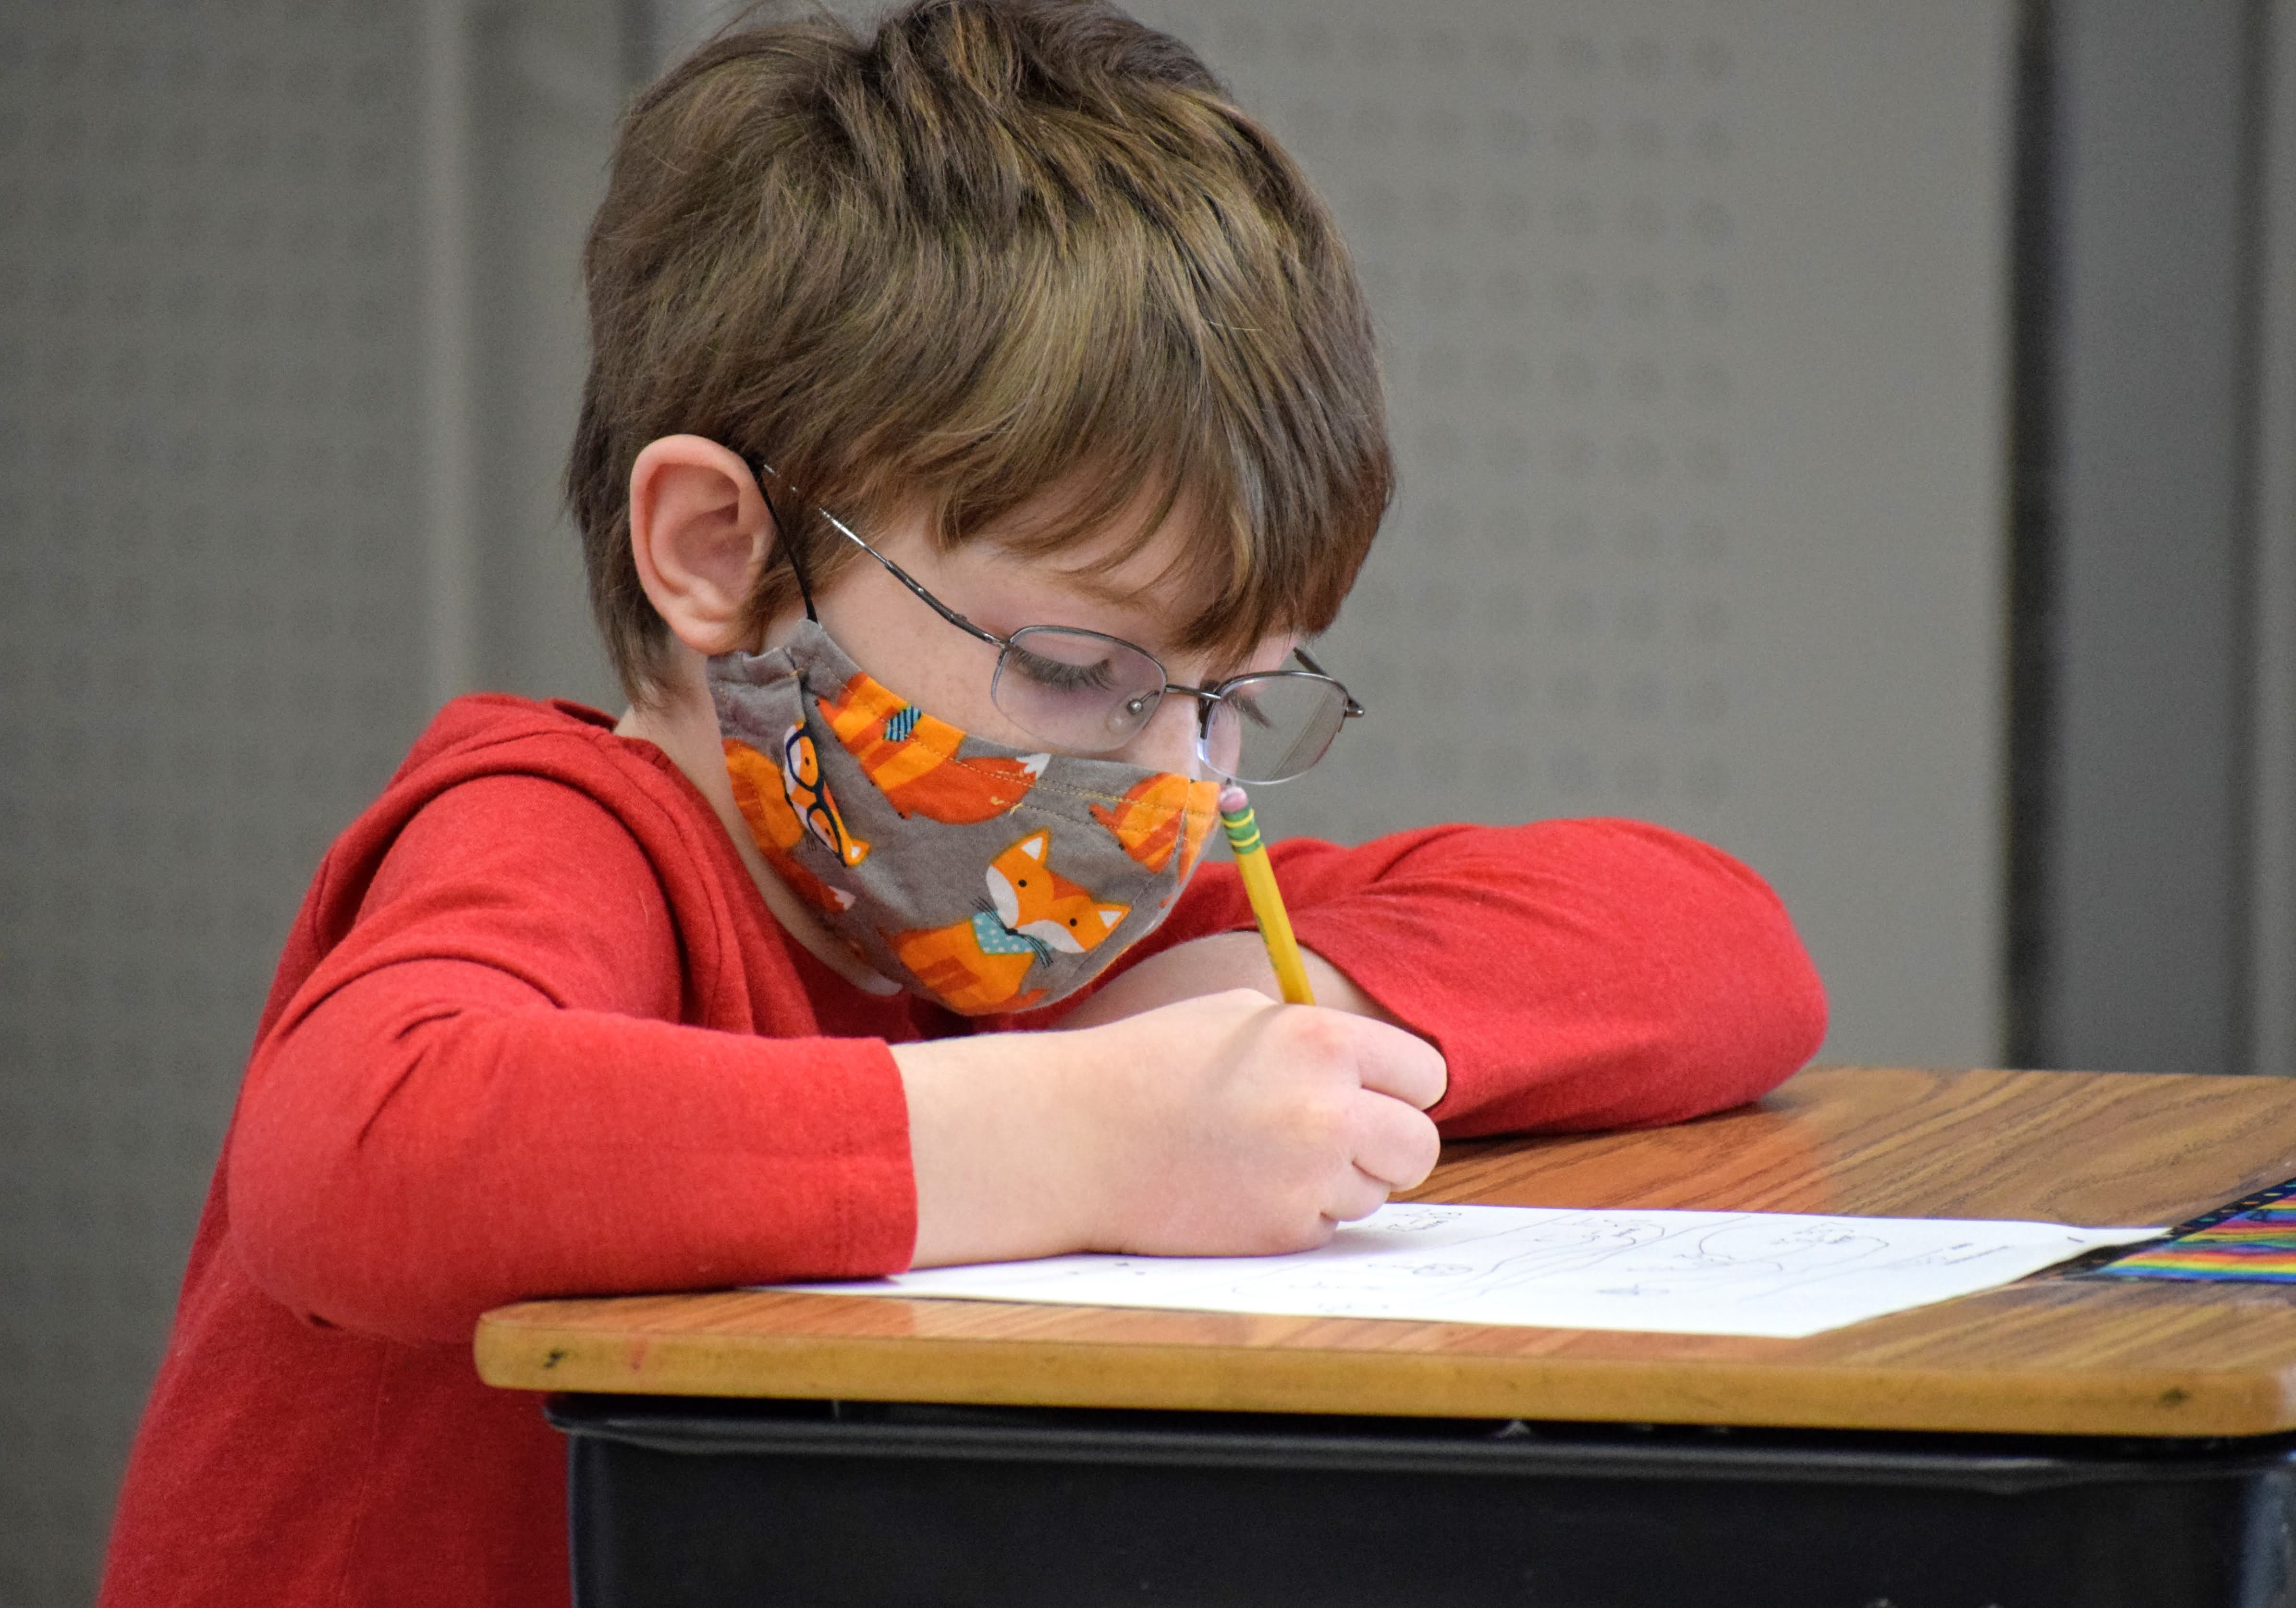 Student working independently